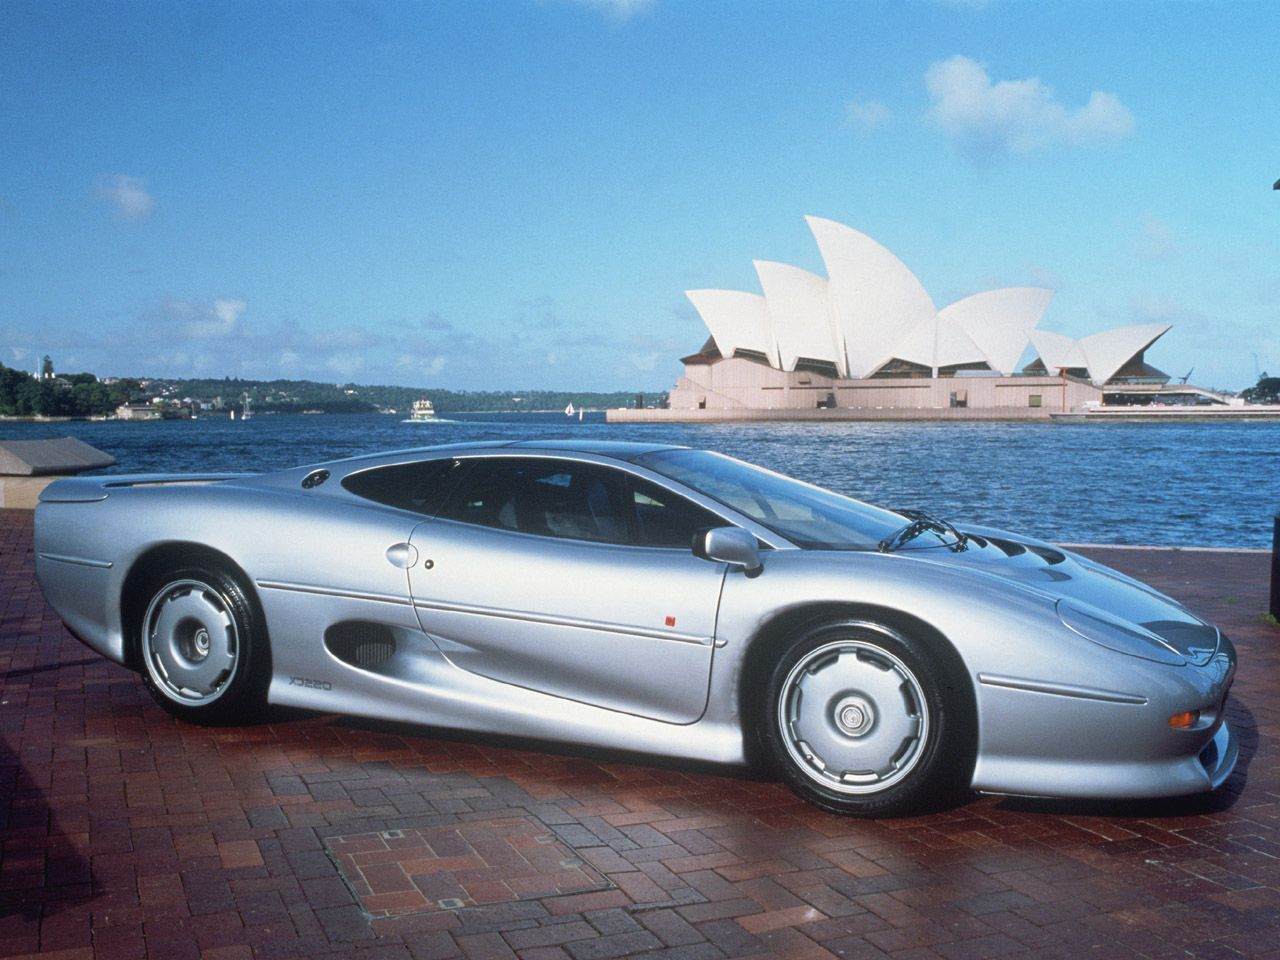 We Like To Talk About Fleets Cars Electric Cars And Practical - Fast practical cars